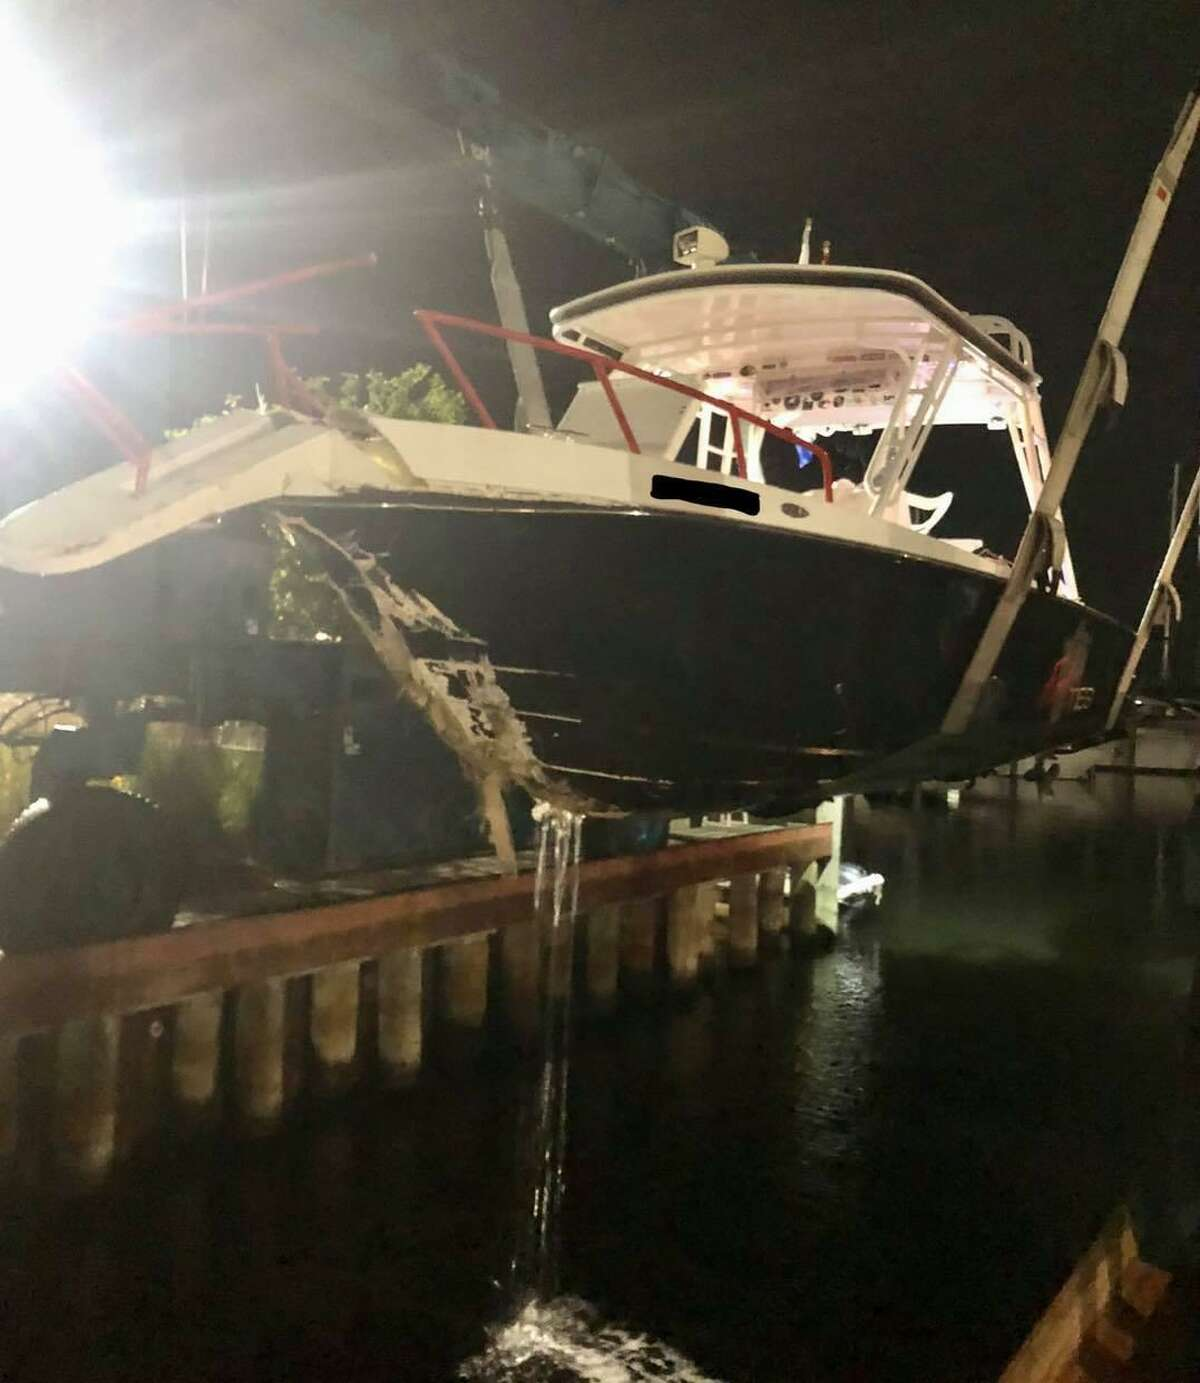 The boat crashed into the break wall Saturday night resulting in several injuries.